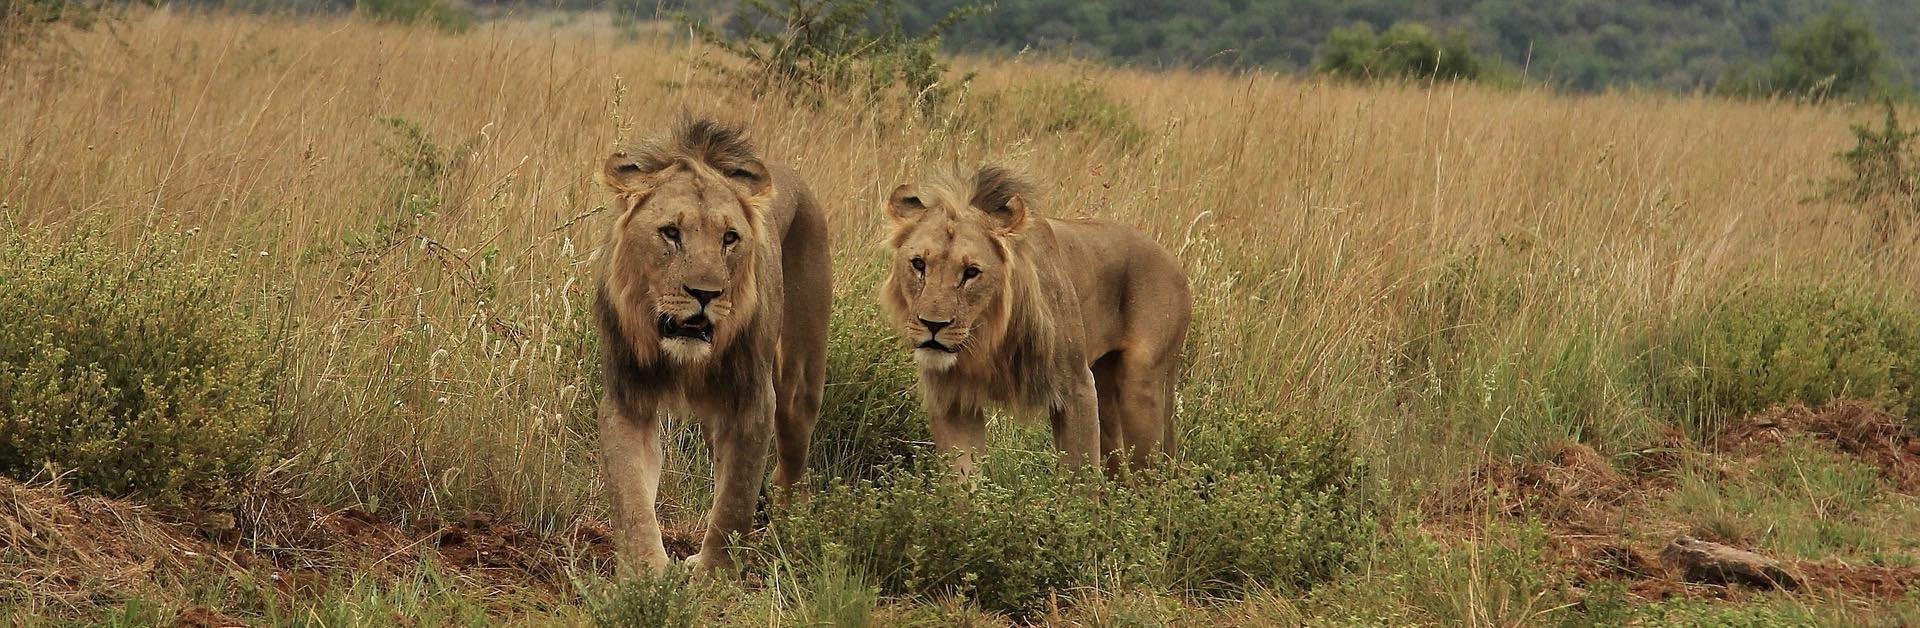 Deux Lions qui dominent dans la jungle africaine